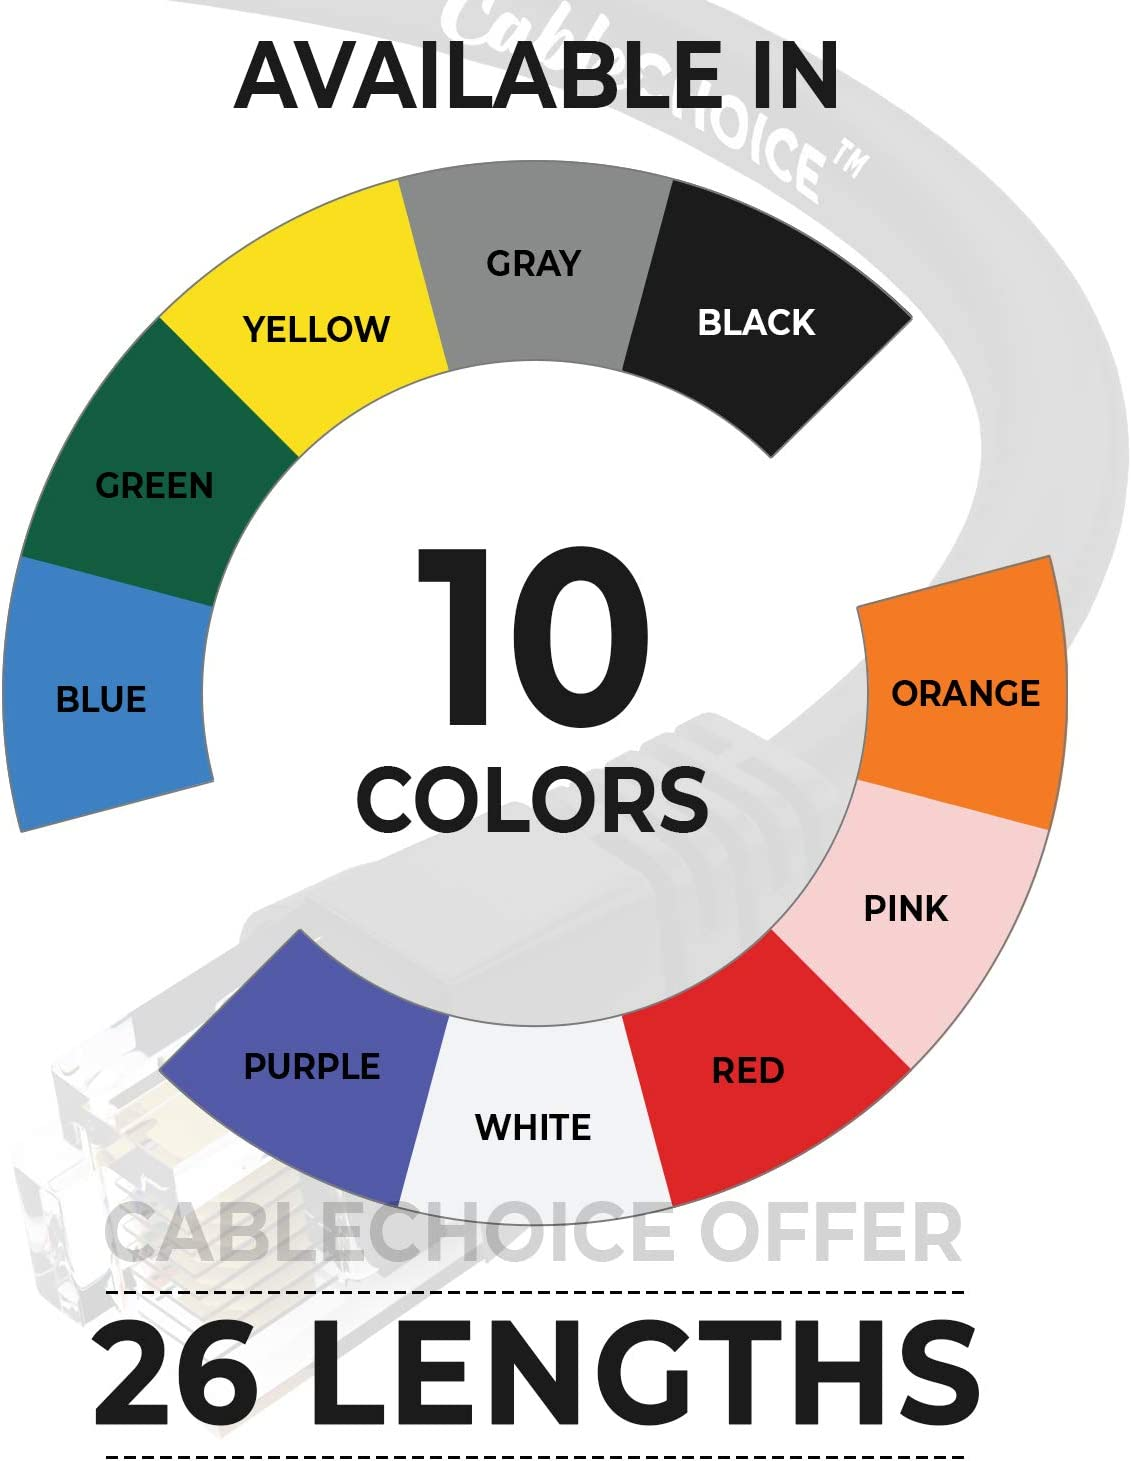 Computer Network Cable with Snagless Connector UTP Cat5e Ethernet Cable CABLECHOICE 10-Pack Available 28 Lengths and 10 Color RJ45 10Gbps High Speed LAN Internet Patch Cord 25 Feet - Yellow